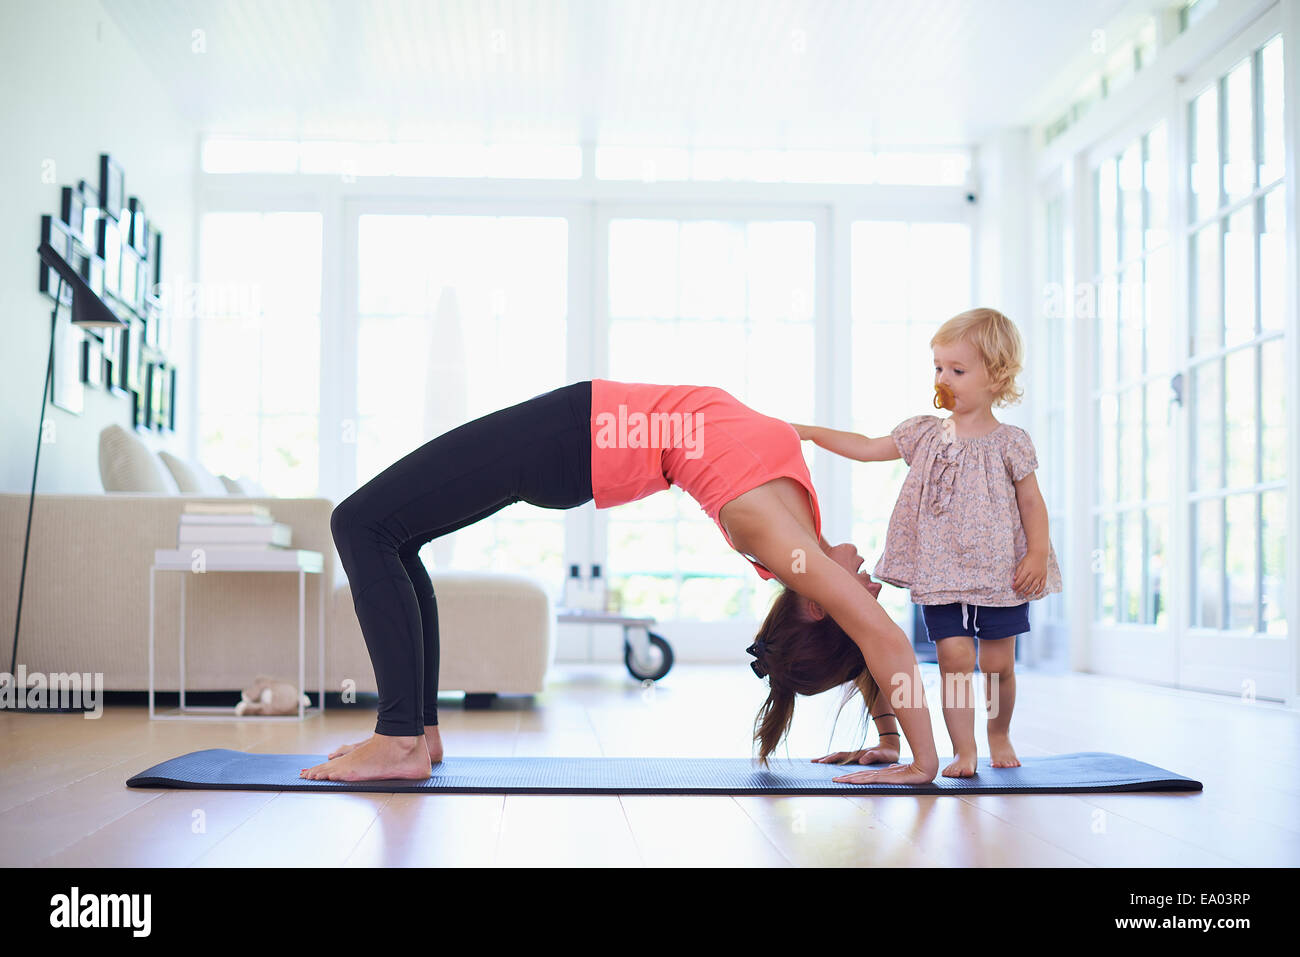 Love Yoga Fotos E Imagenes De Stock Alamy